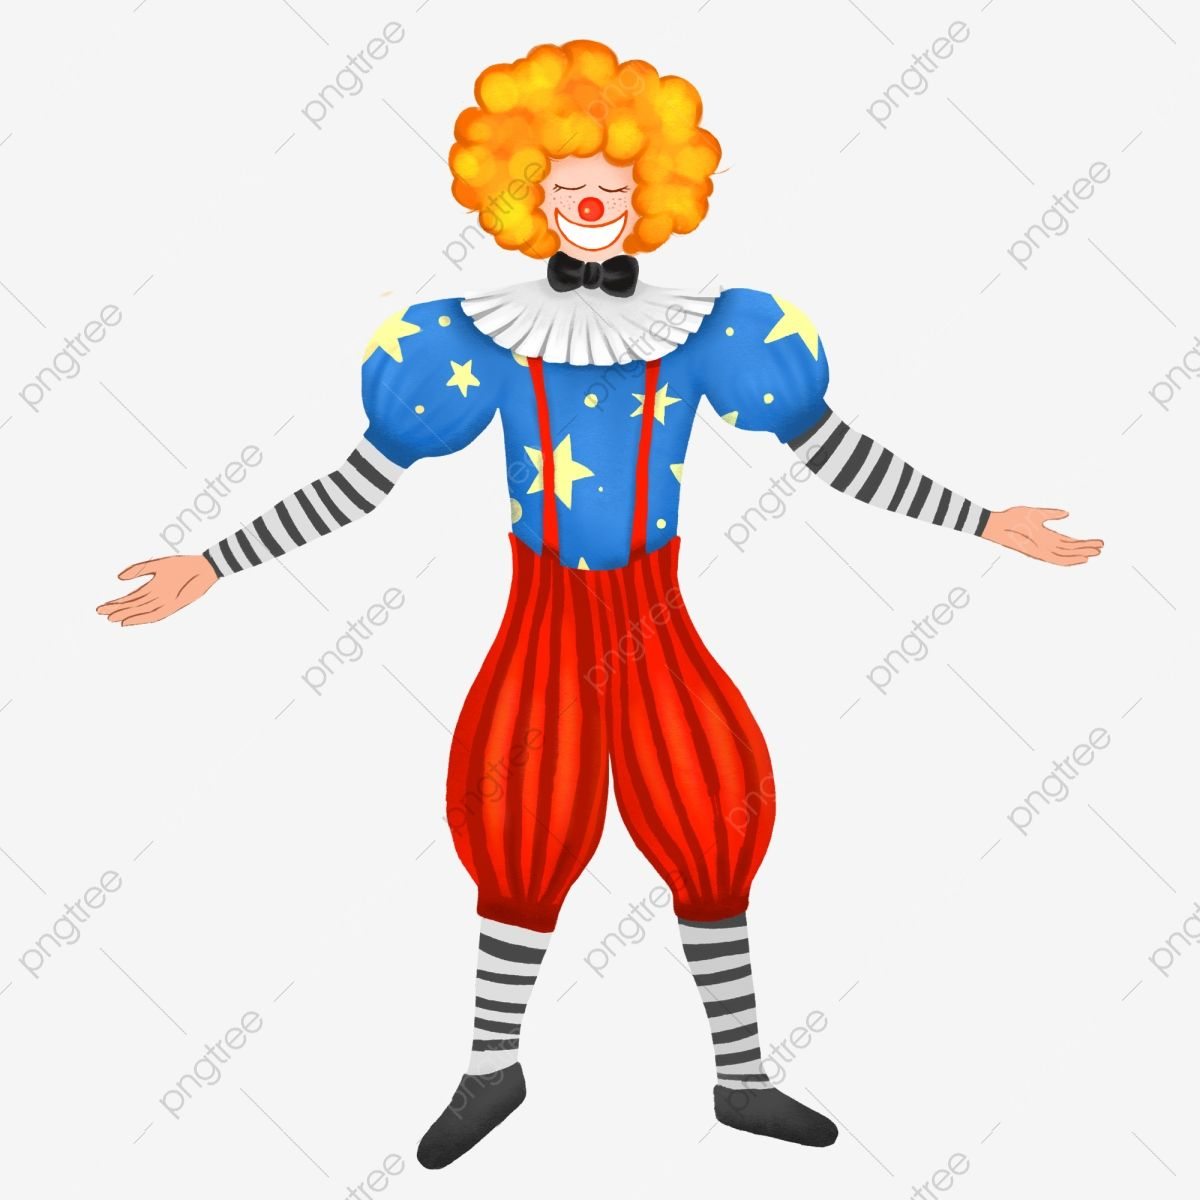 Hand Drawn Cartoon Clown Image Clown Clipart April Fool S Day Clown Png Transparent Clipart Image And Psd File For Free Download Clown Images How To Draw Hands Cartoon